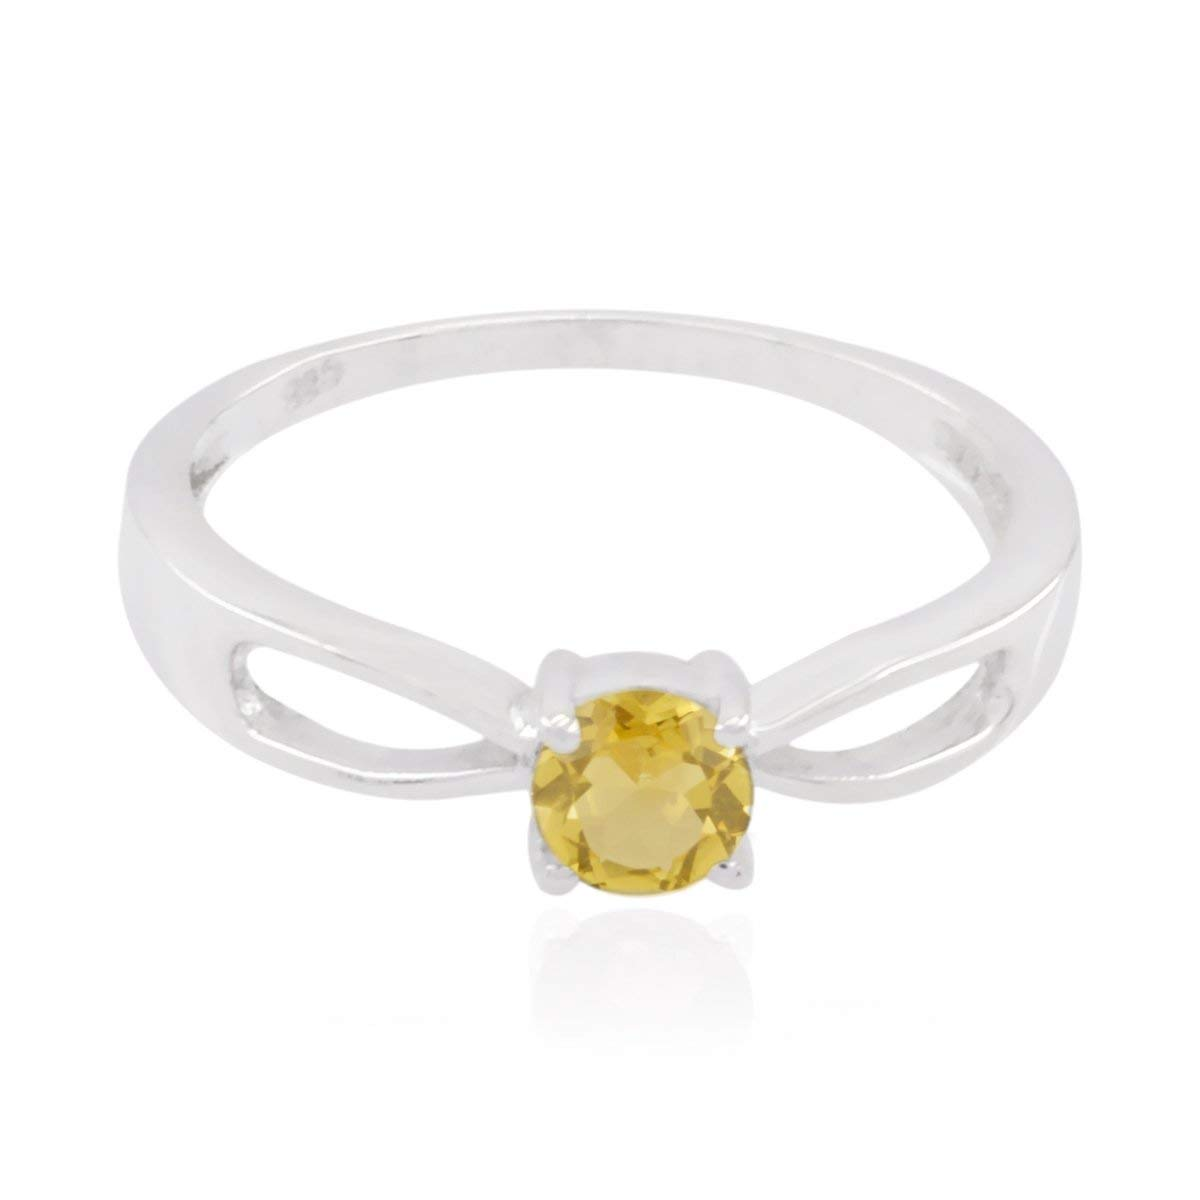 Real Gemstones Round Faceted Citrines Rings - Fashion Silber Yellow Citrines Real Gemstones Ring - jents Jewelry Great Selling Items Gift for Teacher's Day Stacking Rings -US 4